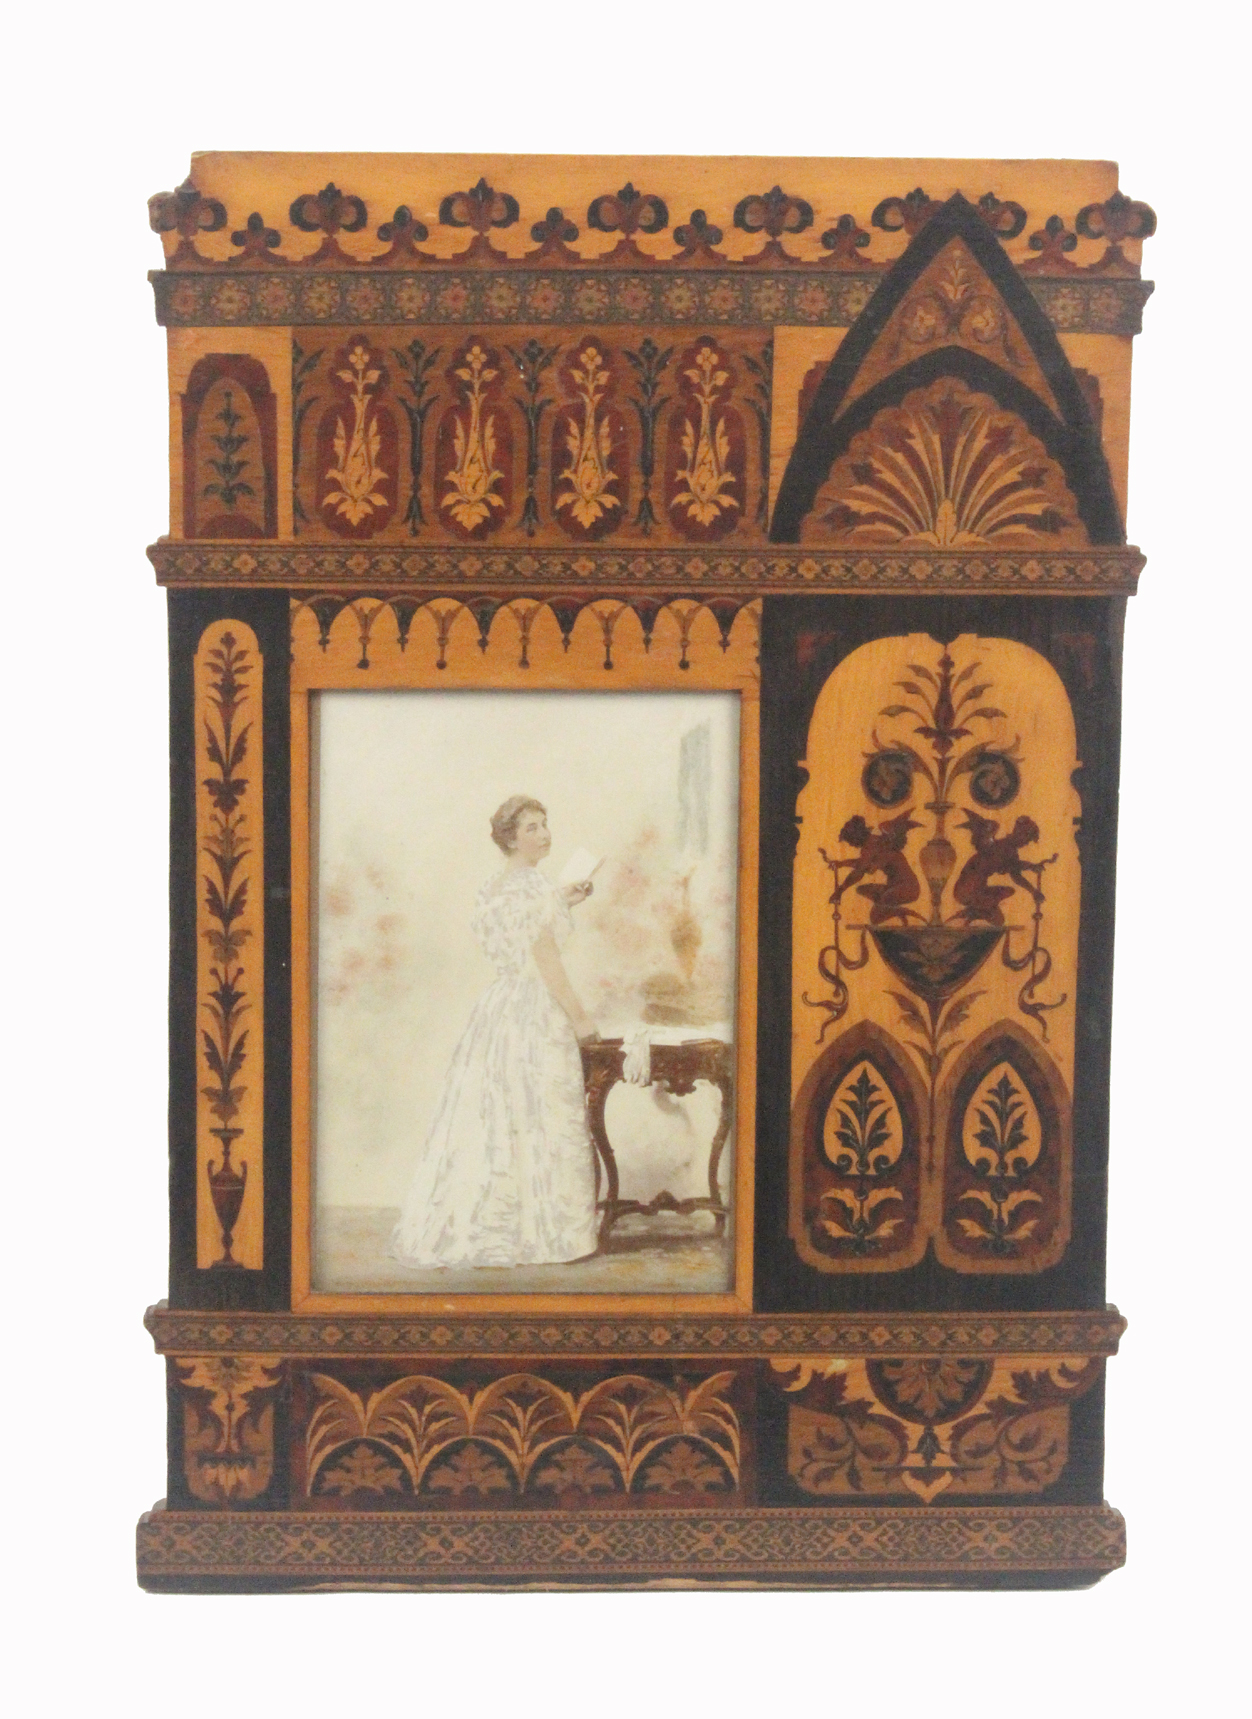 Lot 33 - An unusual Sorrento ware picture frame, the rectangular glazed aperture within inlaid panels of